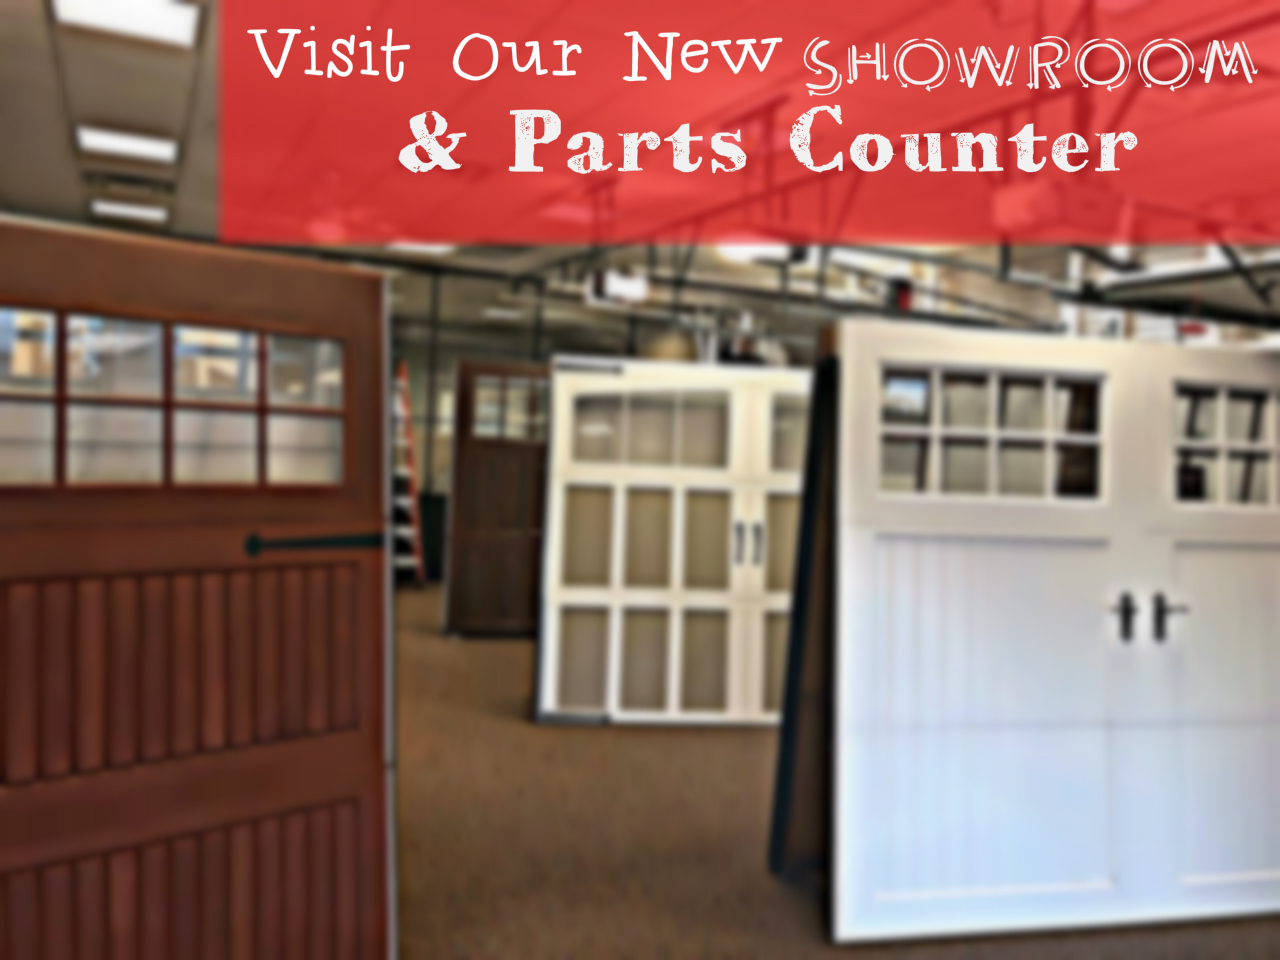 Visit Our New Showroom & Parts Counter; Showroom filled with Garage Doors; Overhead Doors Co. Showroom; New Headquarters located at 952 Route 202 SouthBranchburg, NJ 08876